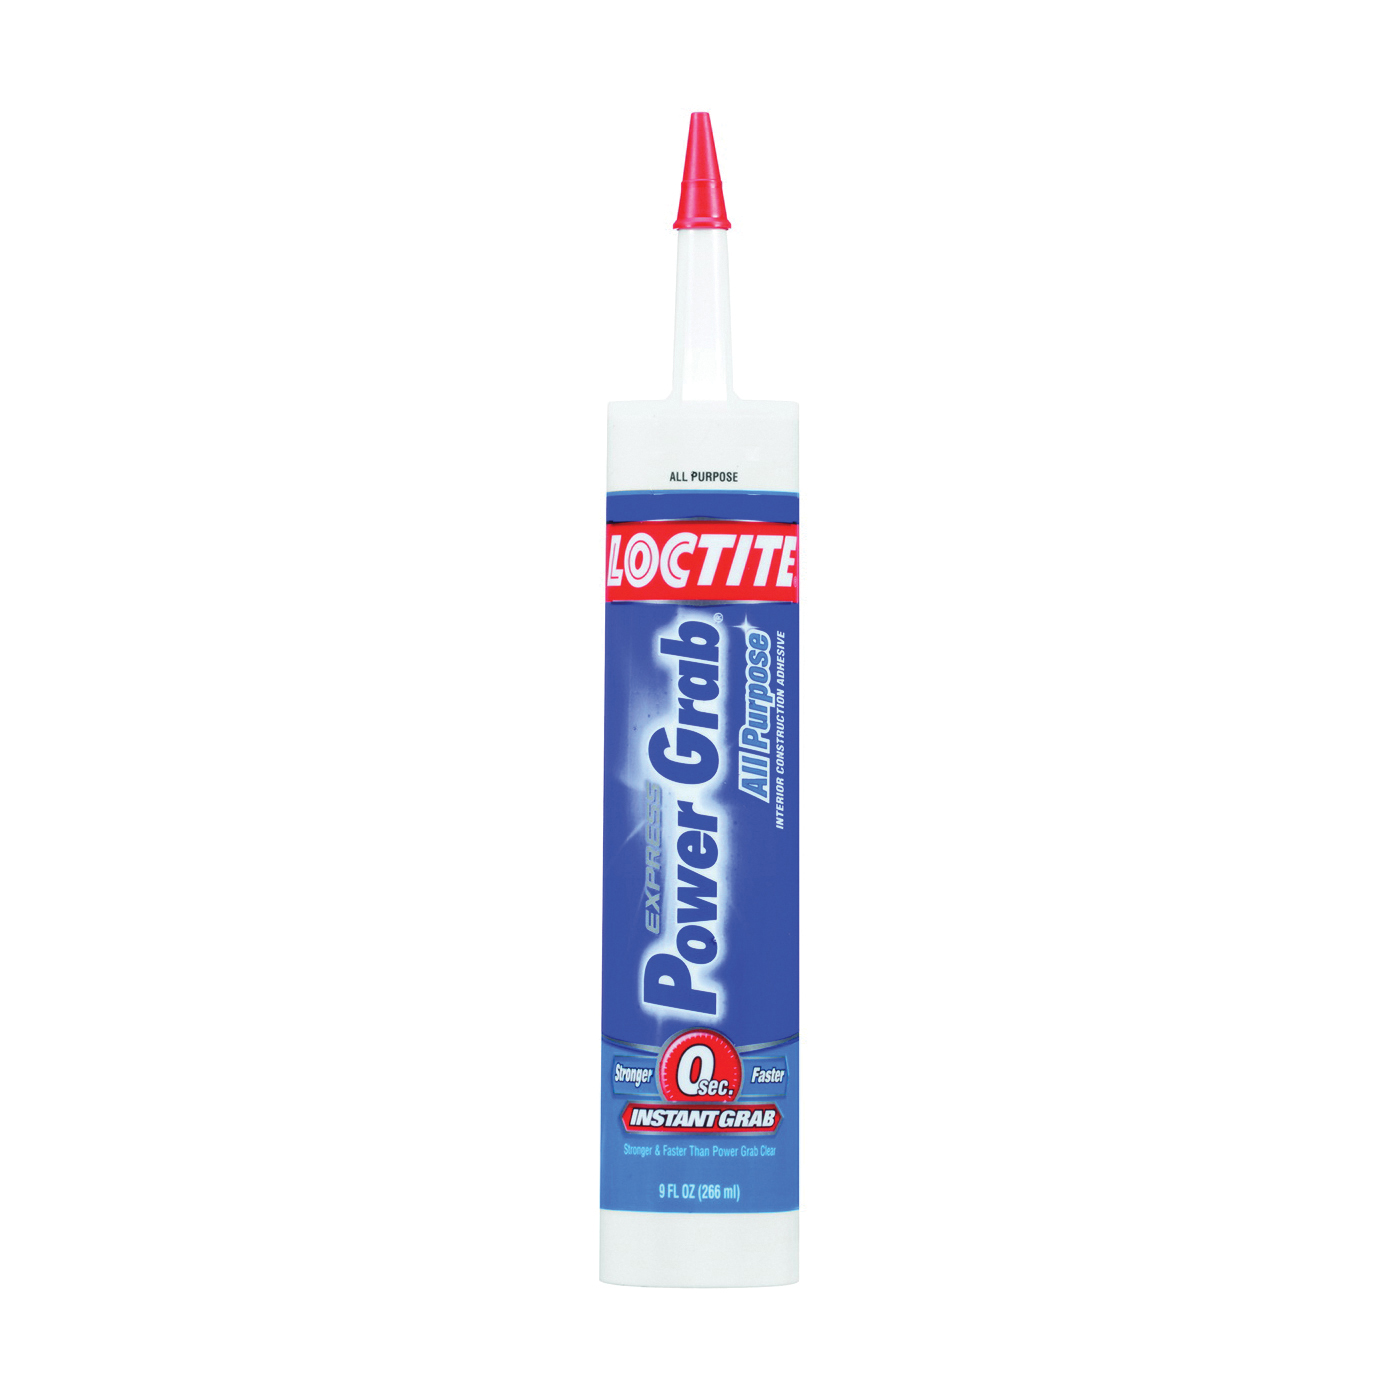 Picture of Loctite 2022554 Interior Construction Adhesive, White, 9 fl-oz Package, Cartridge